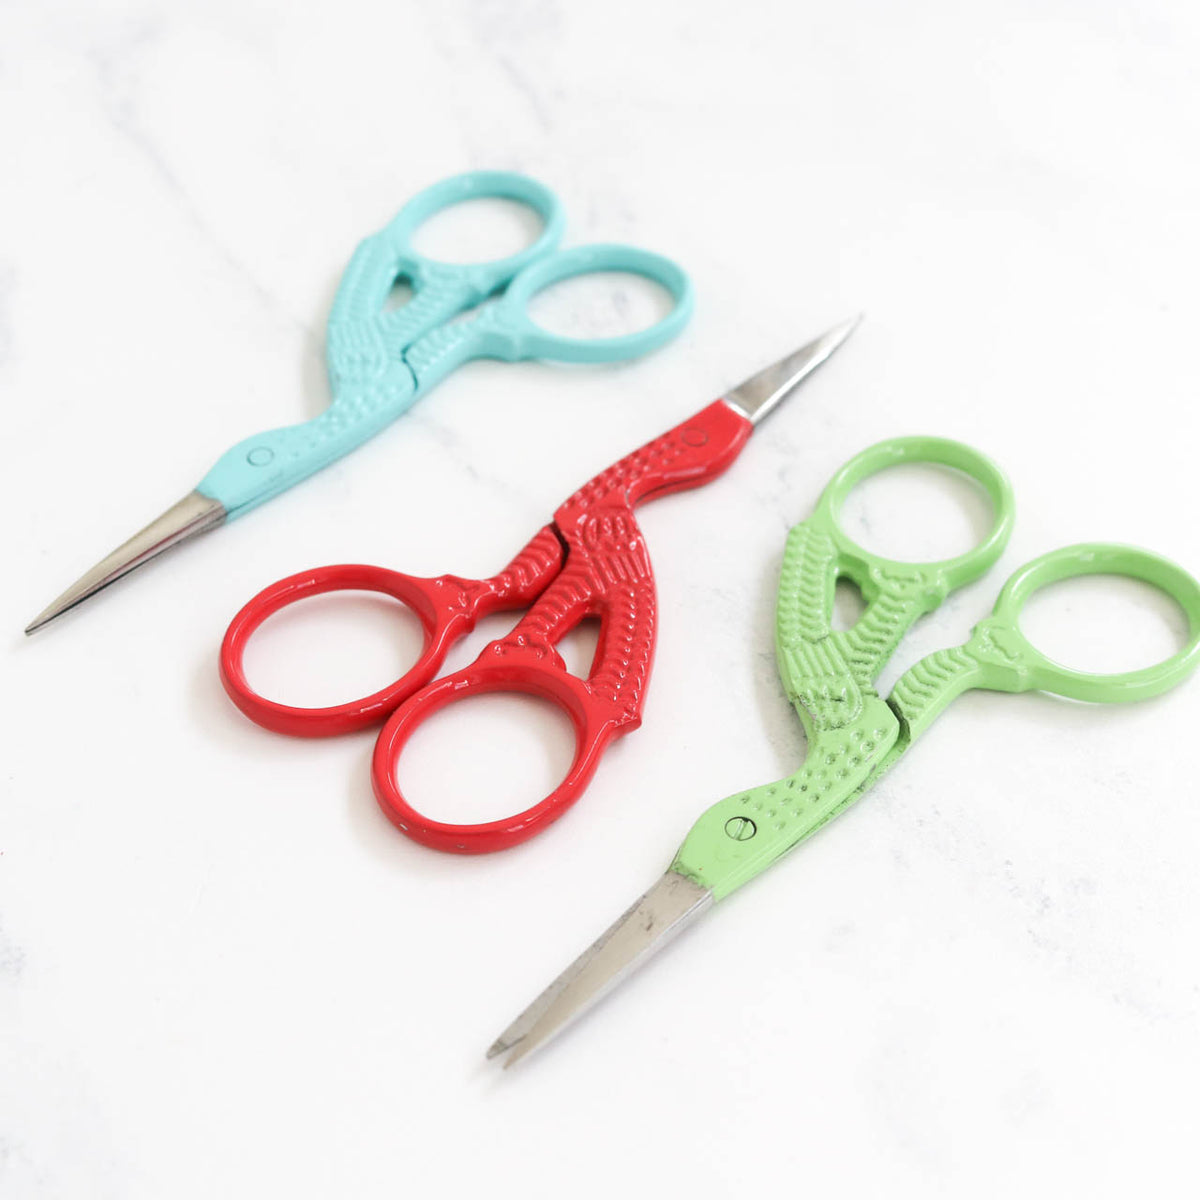 Colorful Stork Embroidery Scissors